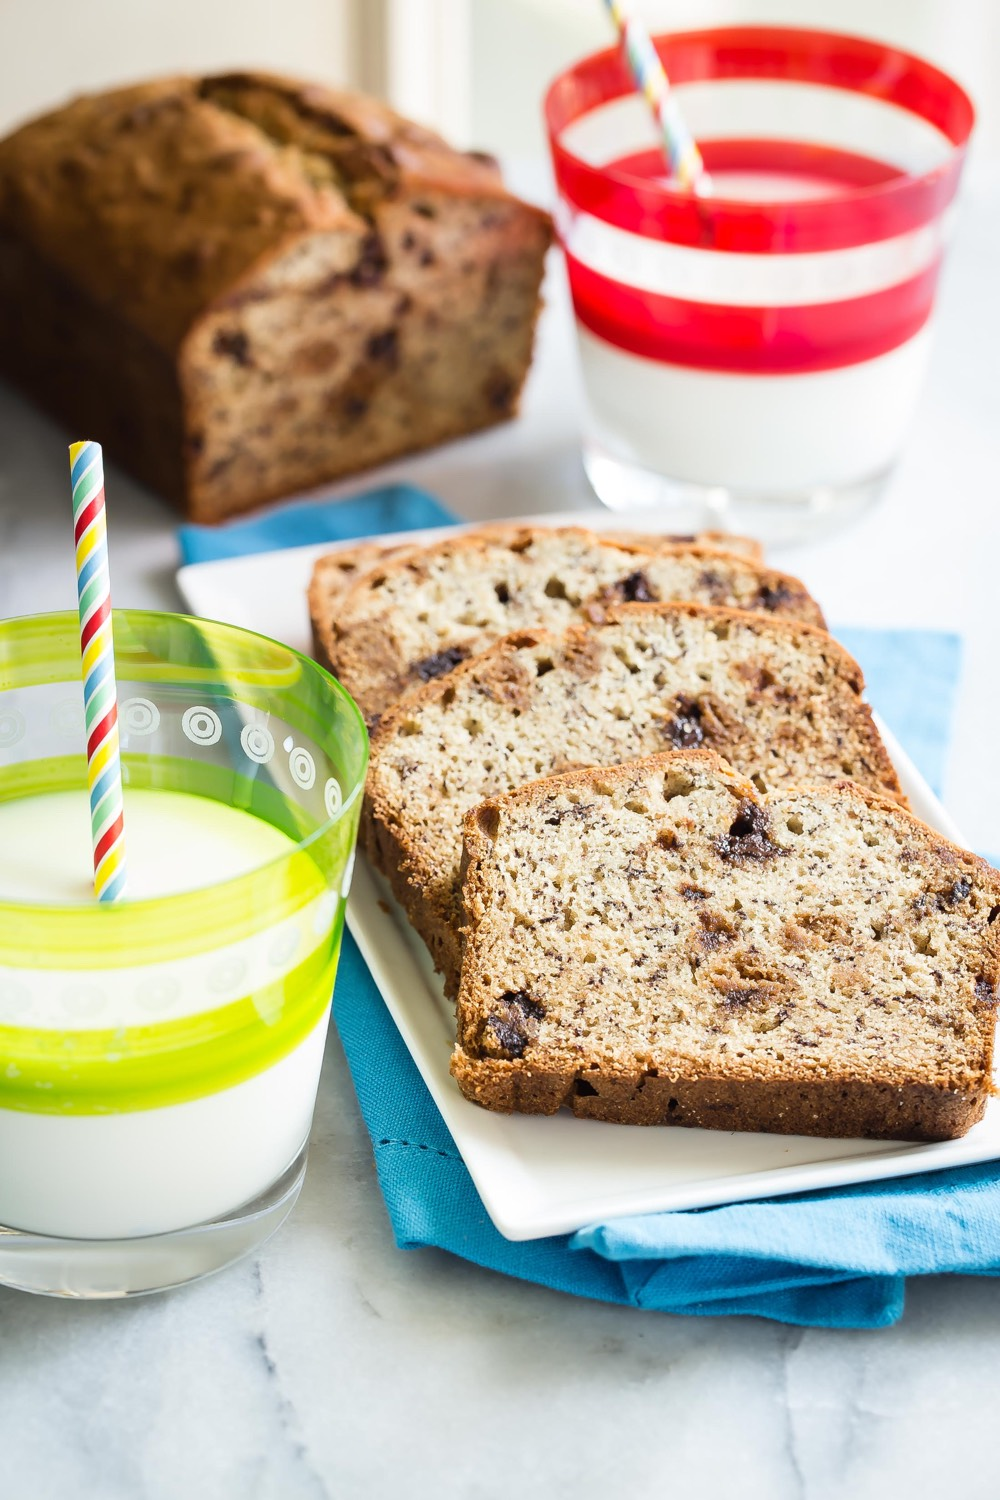 Banana Chocolate Chip Cookie Bread from weelicious.com